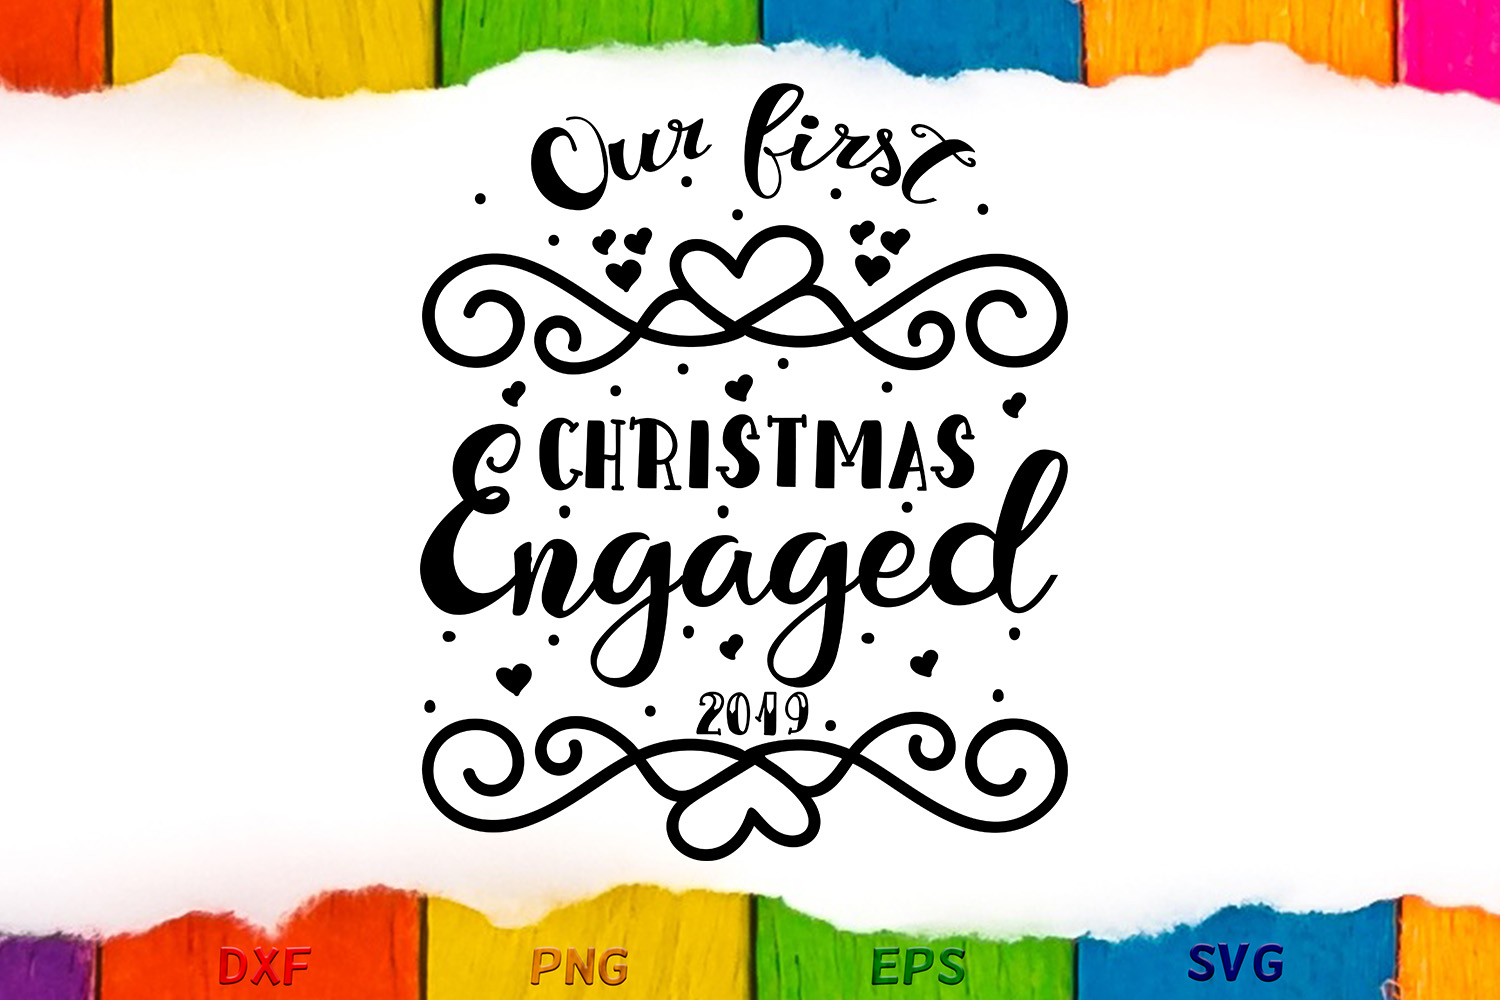 Our first Christmas engaged example image 2